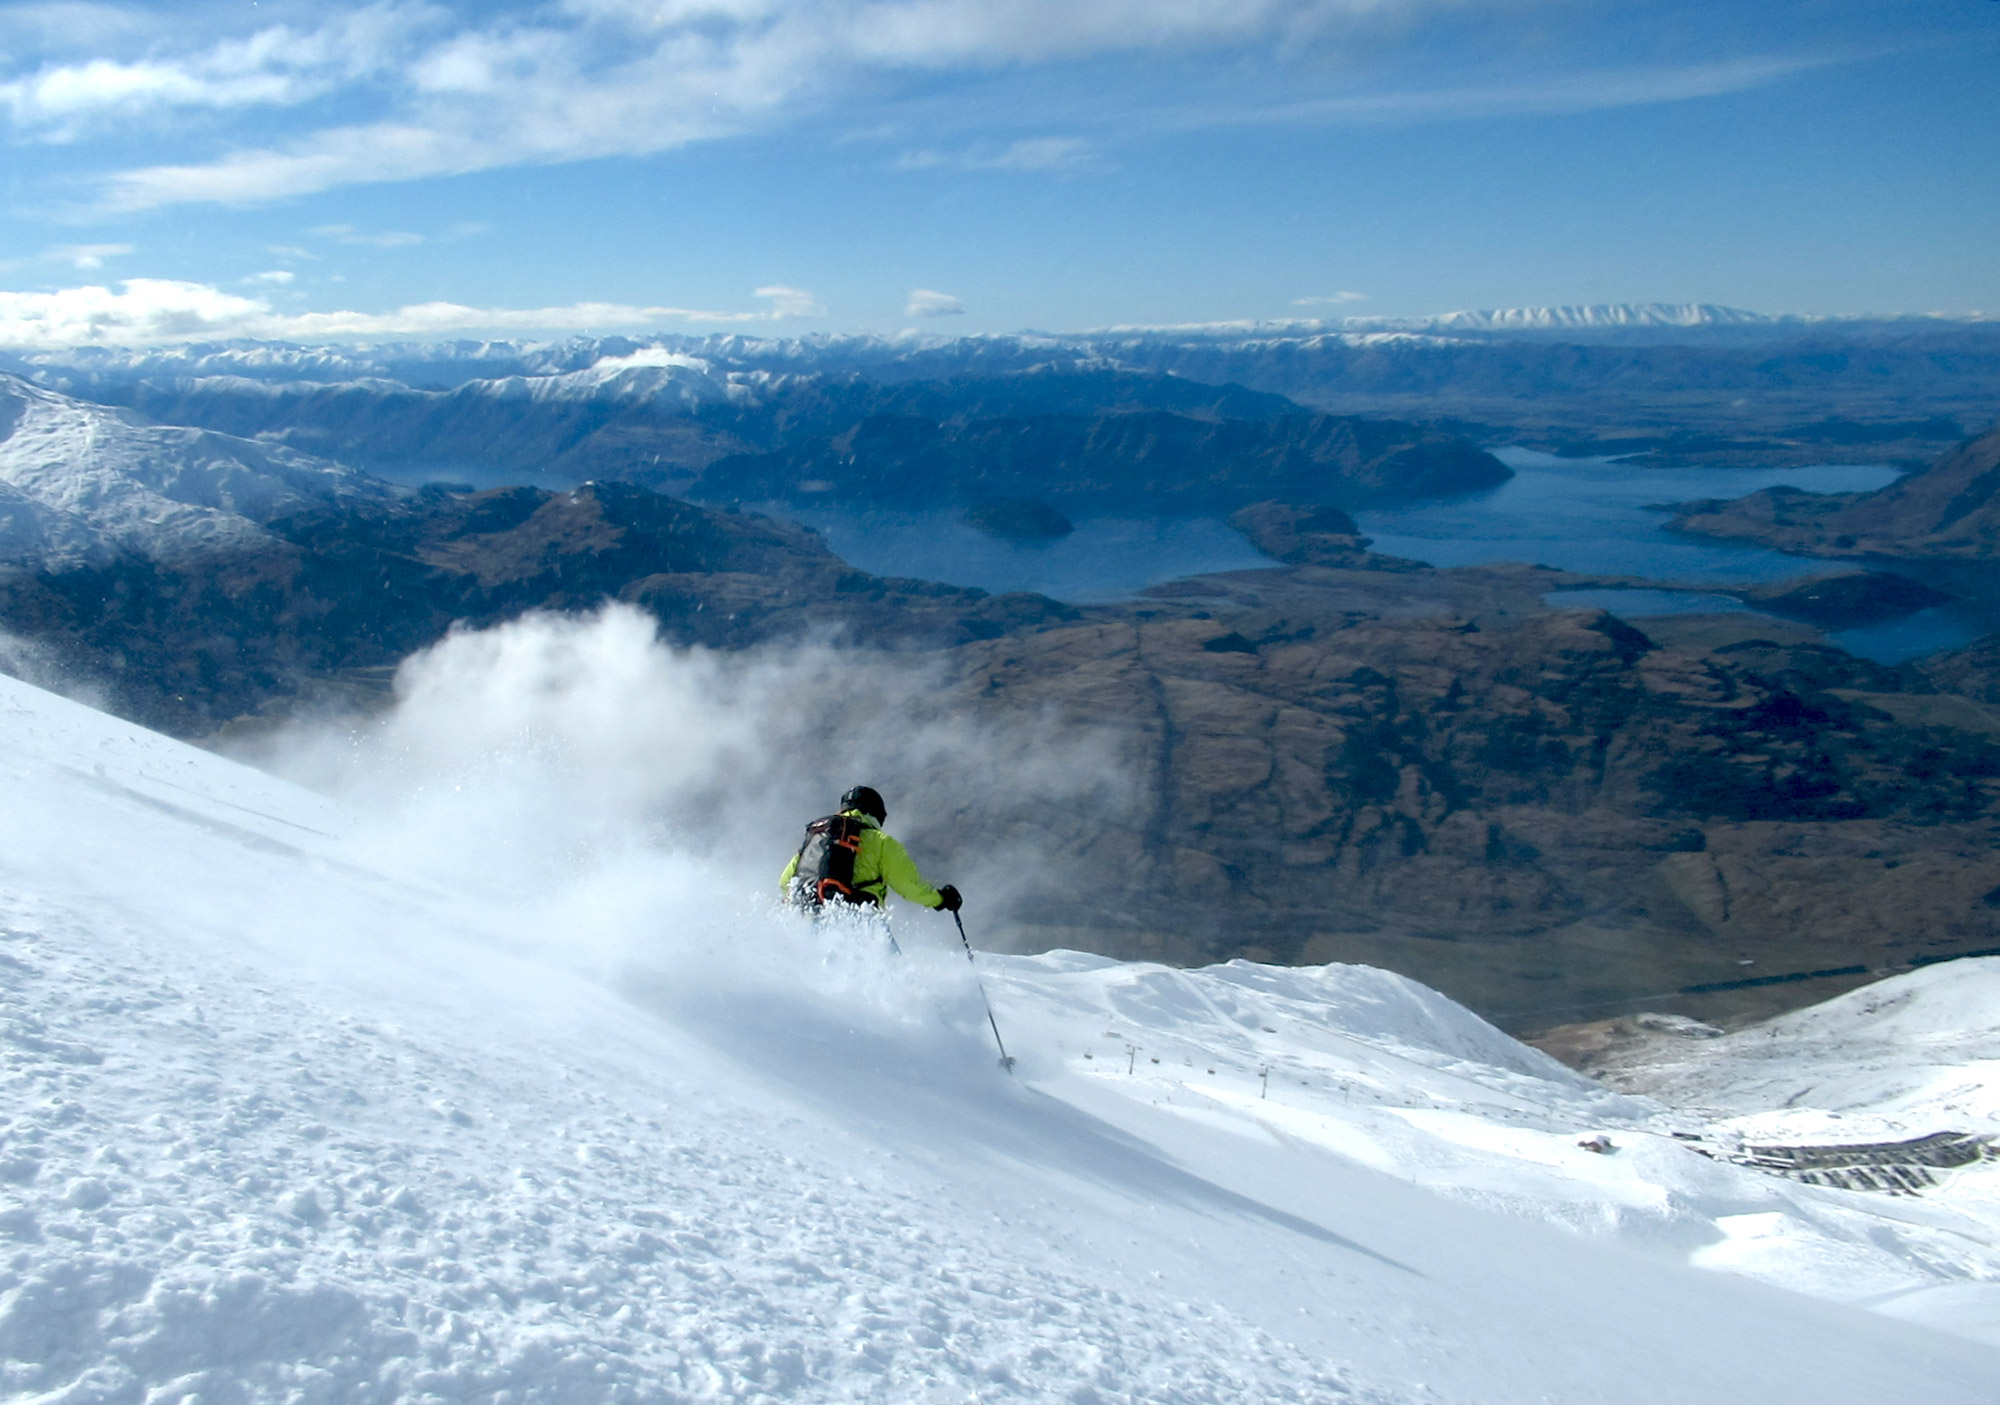 Ski New Zealand: Treble Cone